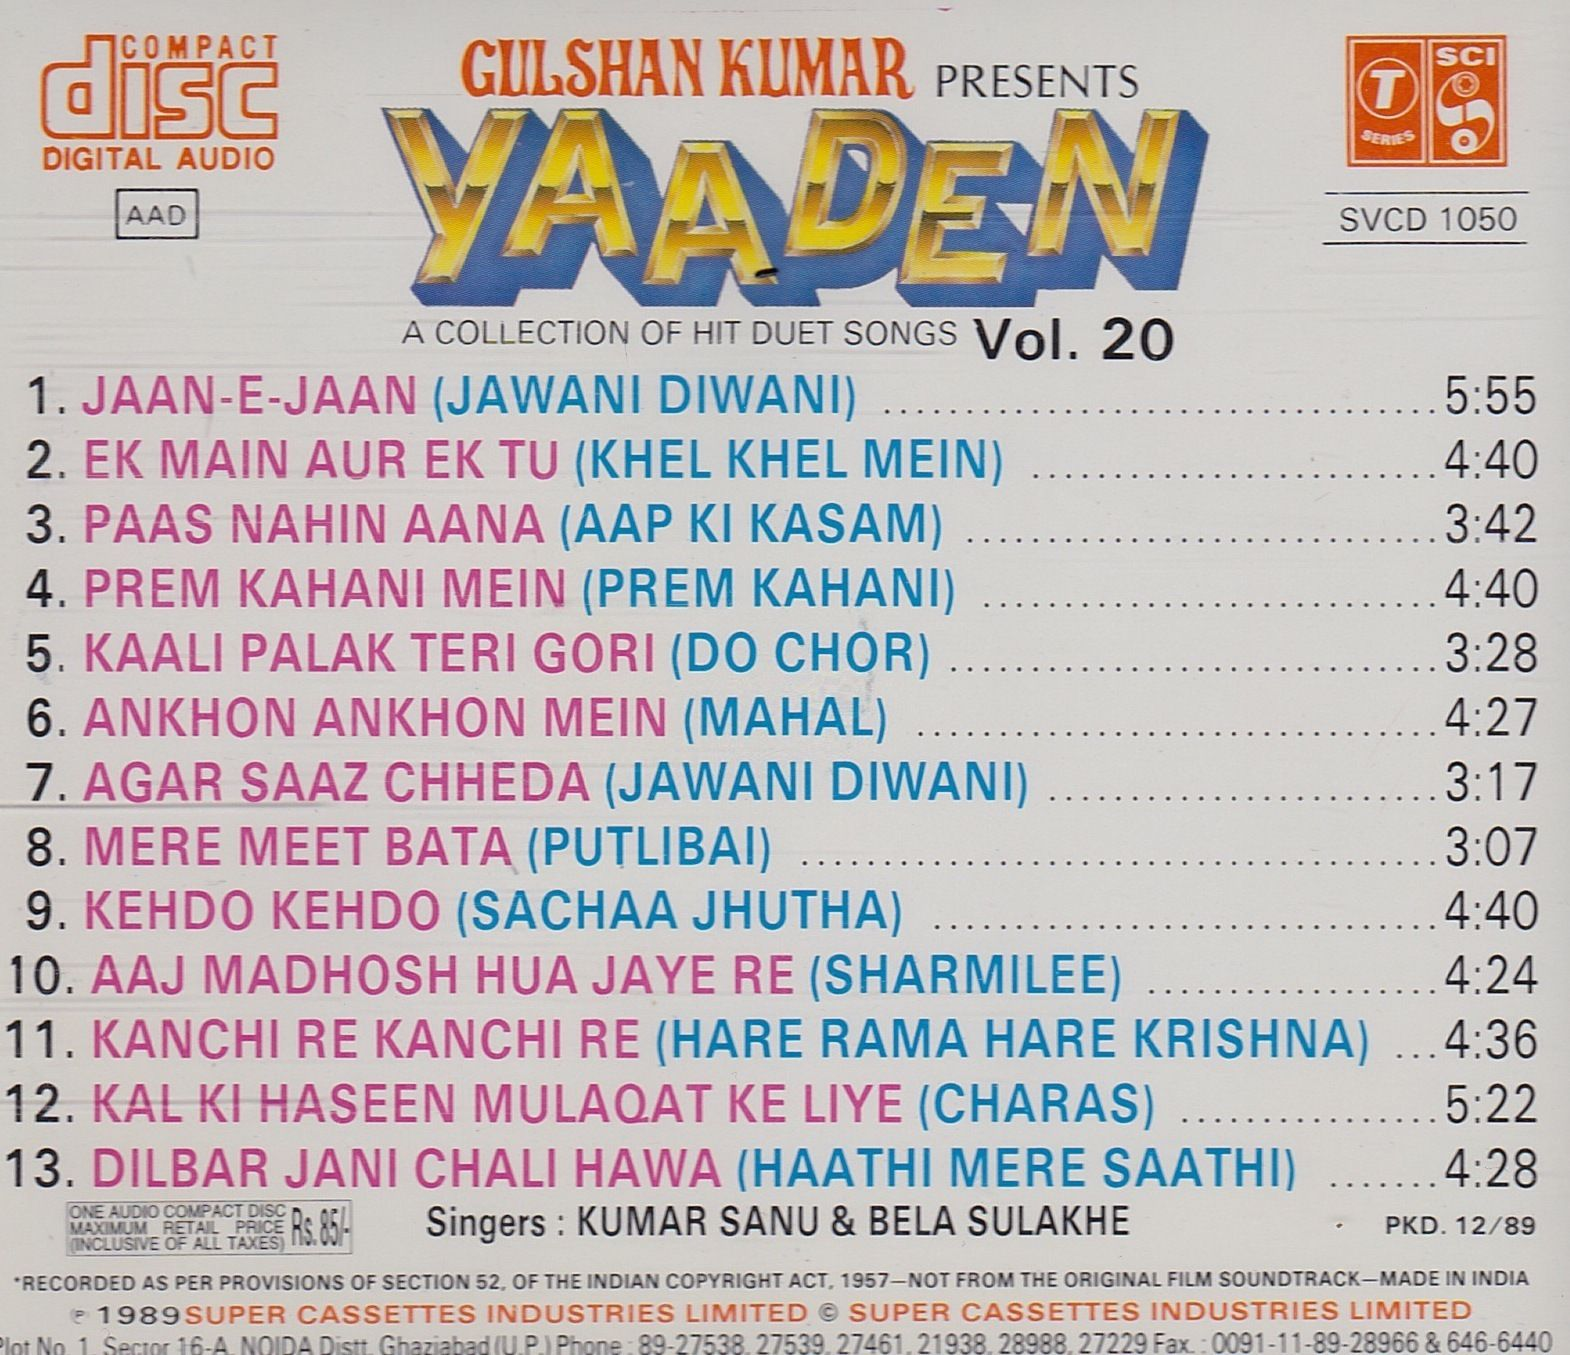 ONLY KUMAR SANU MP3 SONGS DOWNLOAD HERE: Yaaden Vol -20